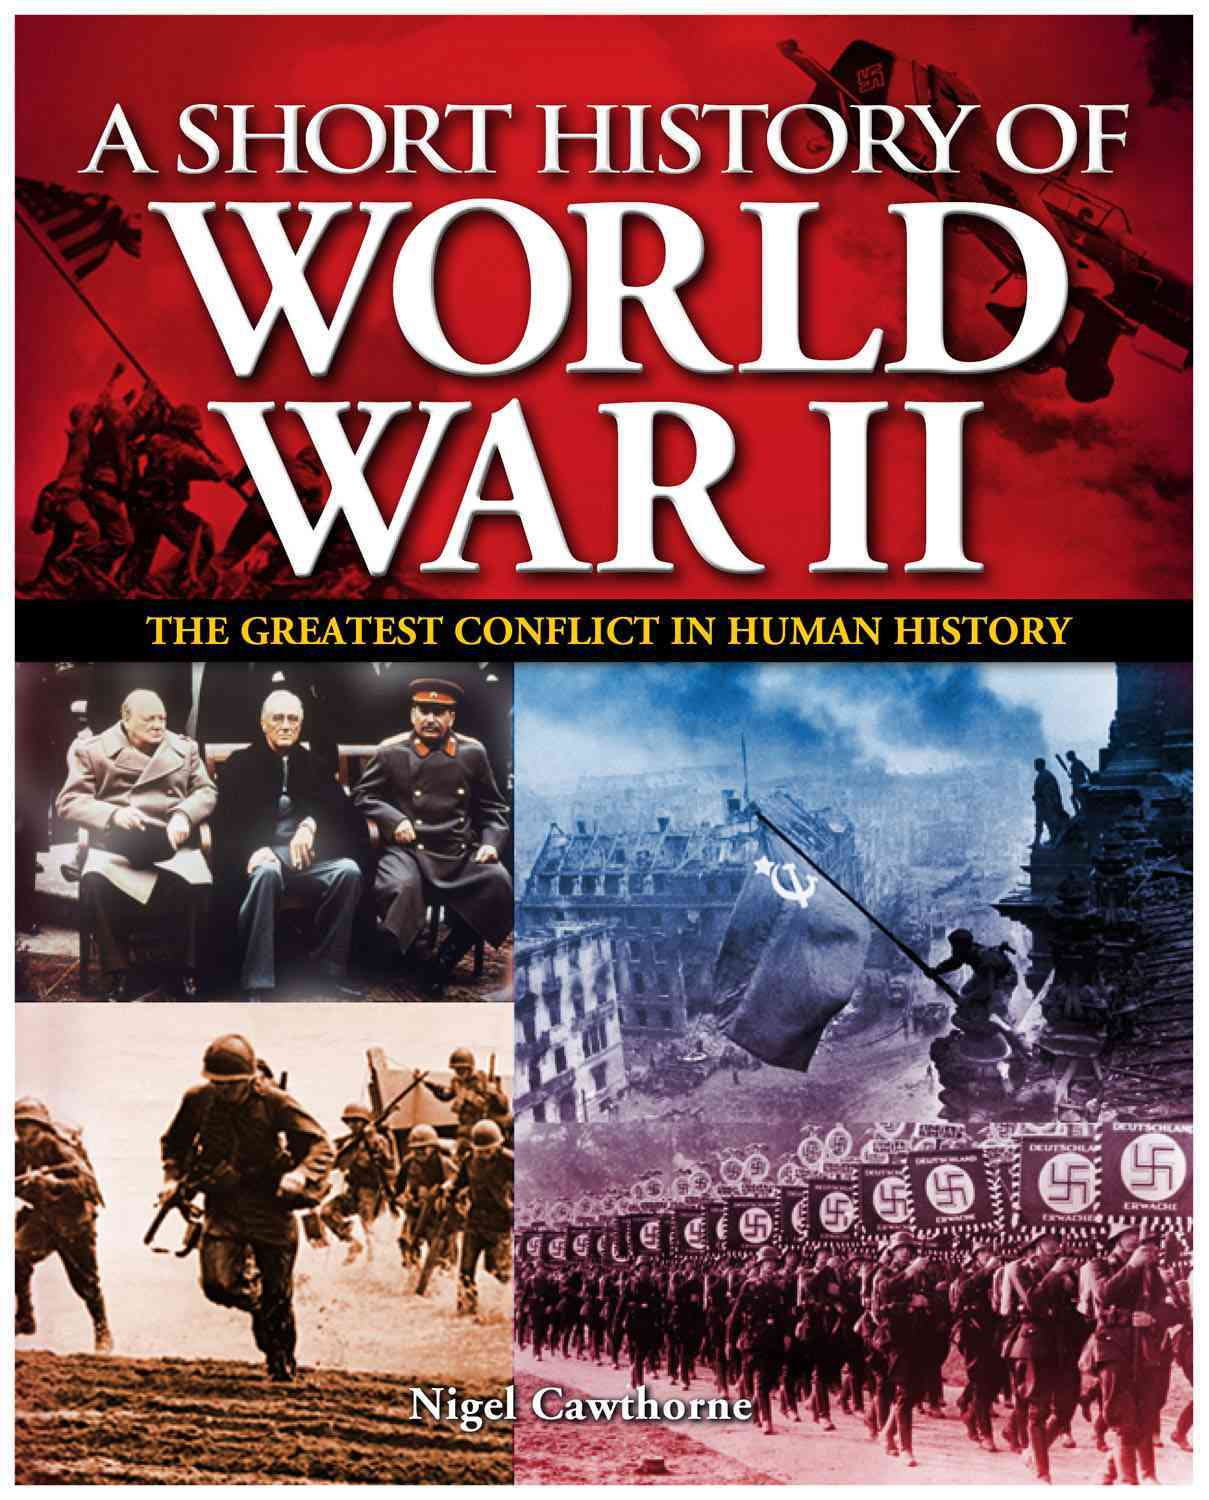 a summarized history of the second world war The second world war, particularly the period from 1940 to 1942 when britain fought with the support of the empire and a few allies, was the climax of churchill's career and his inside story of those days is unique and invaluable.